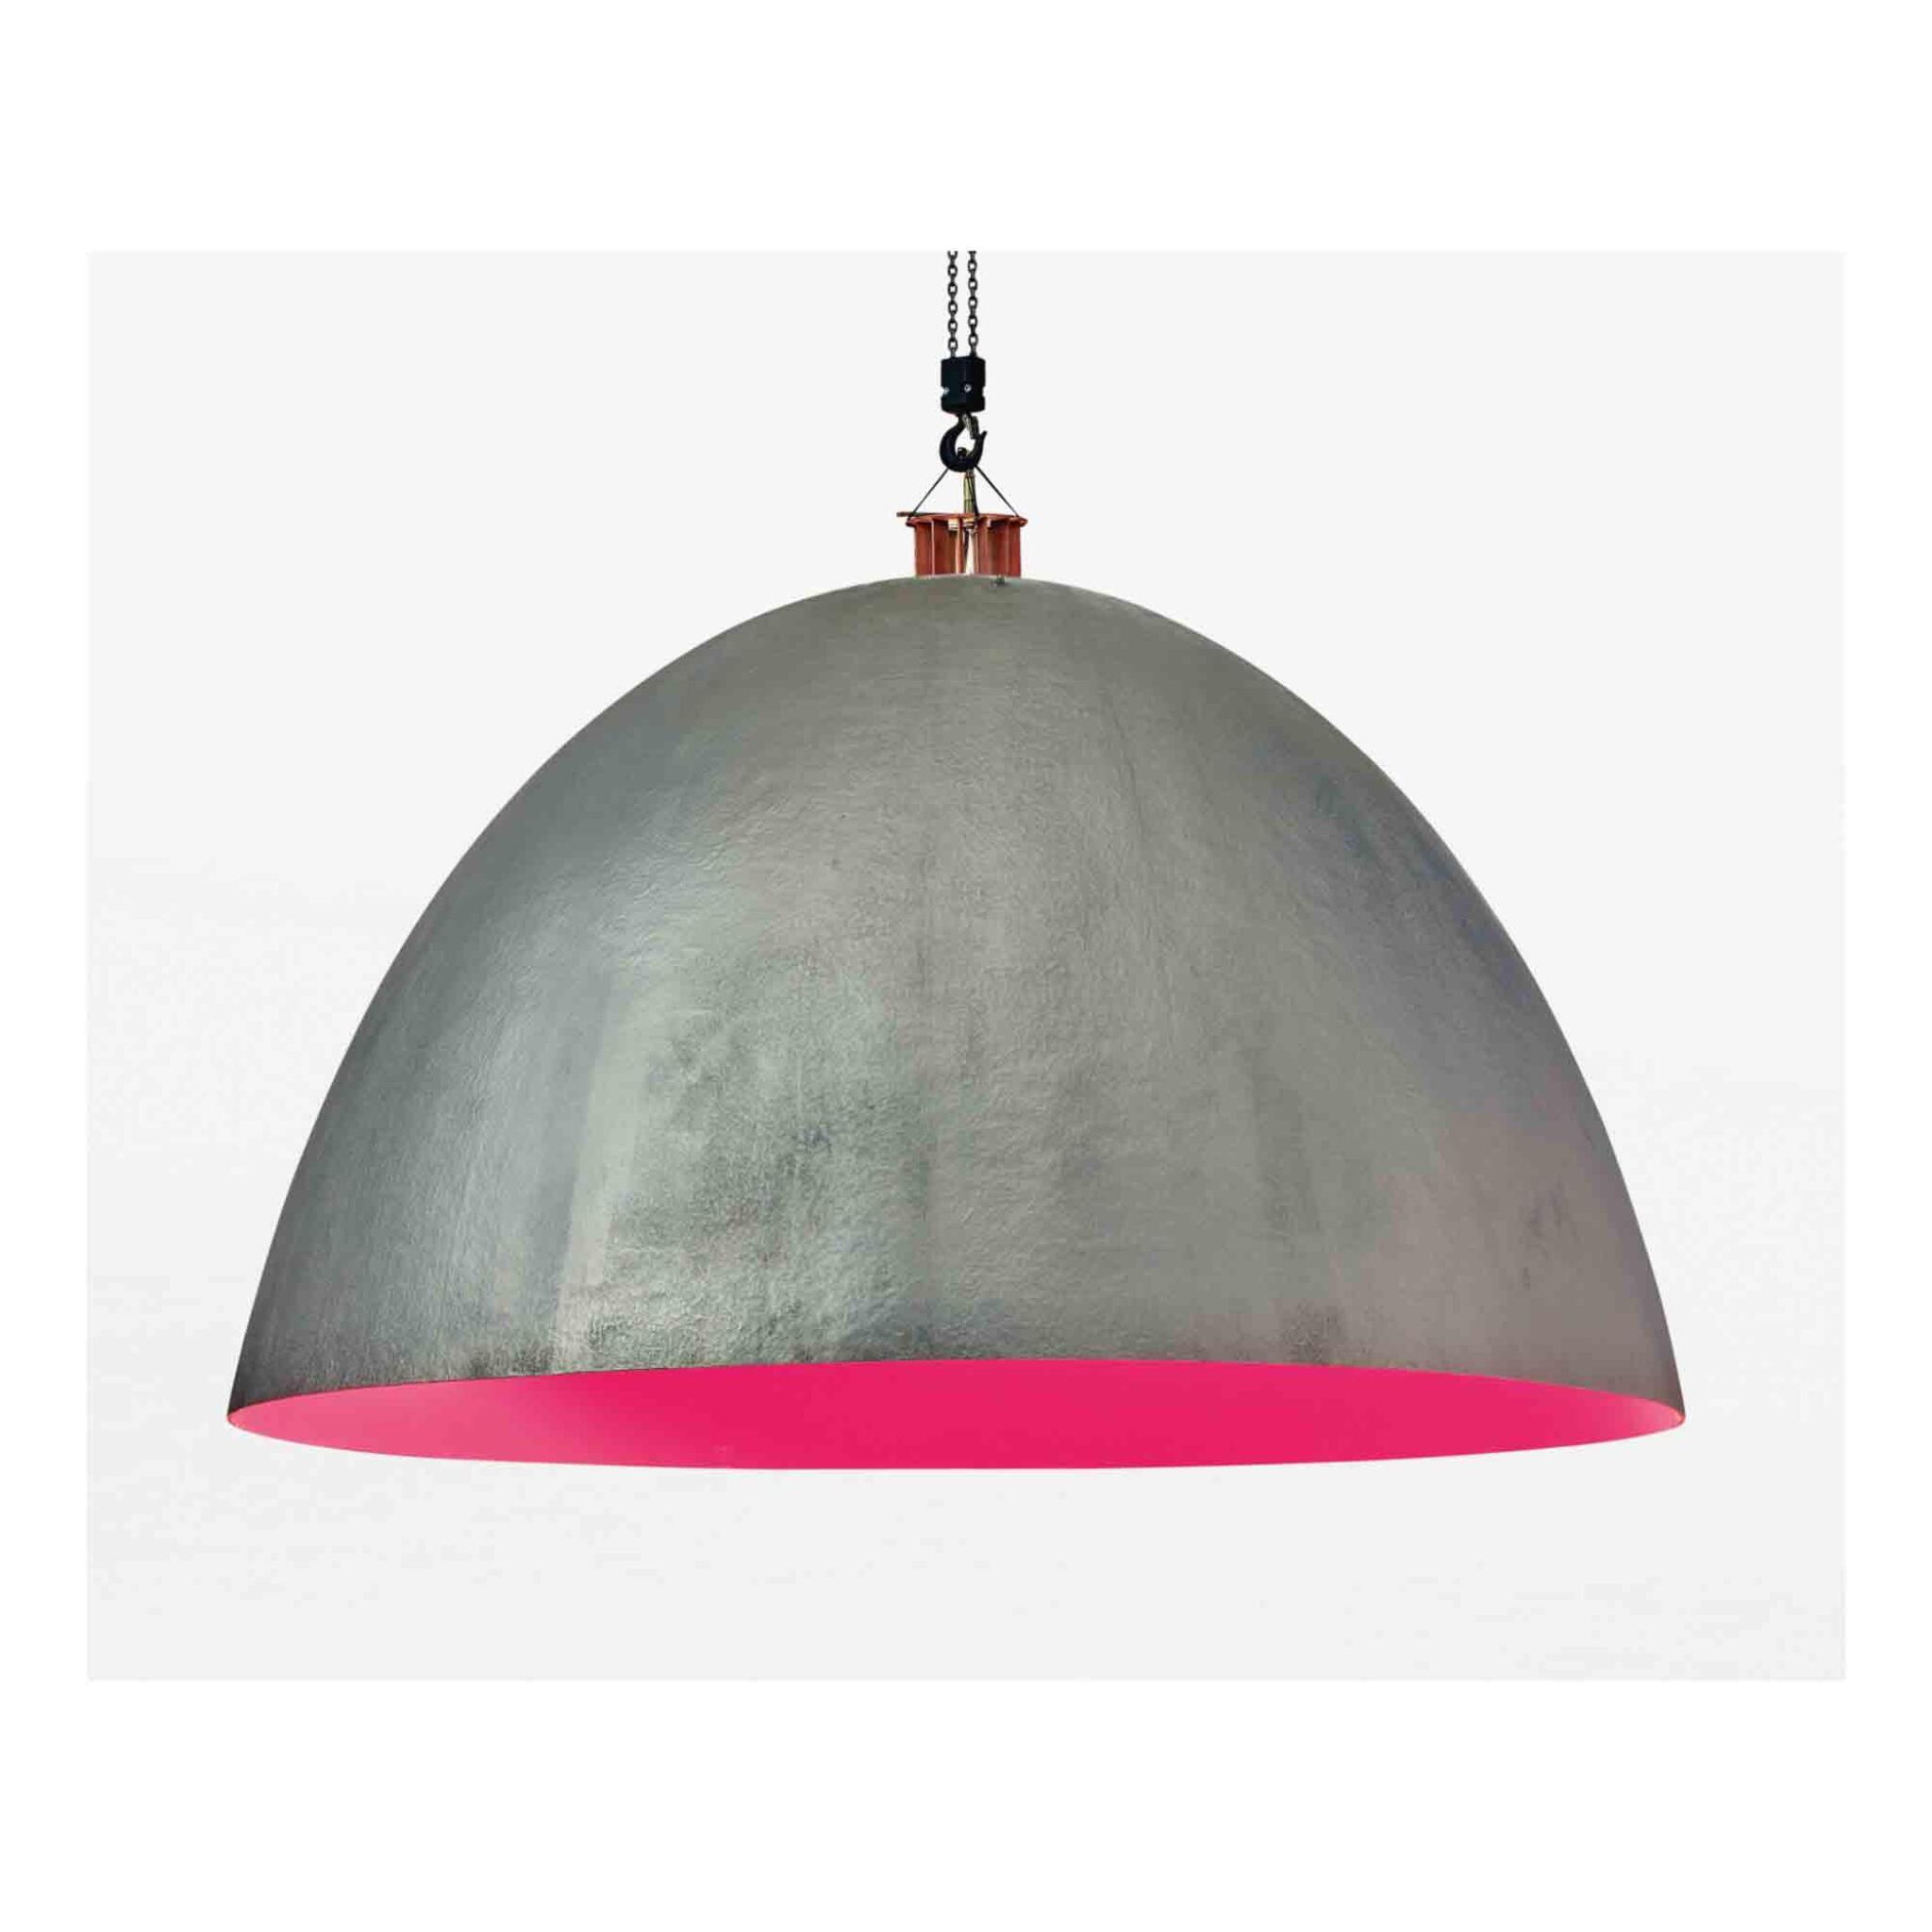 """View full screen - View 1 of Lot 166. """"XXL Dome"""" Hanging Light."""